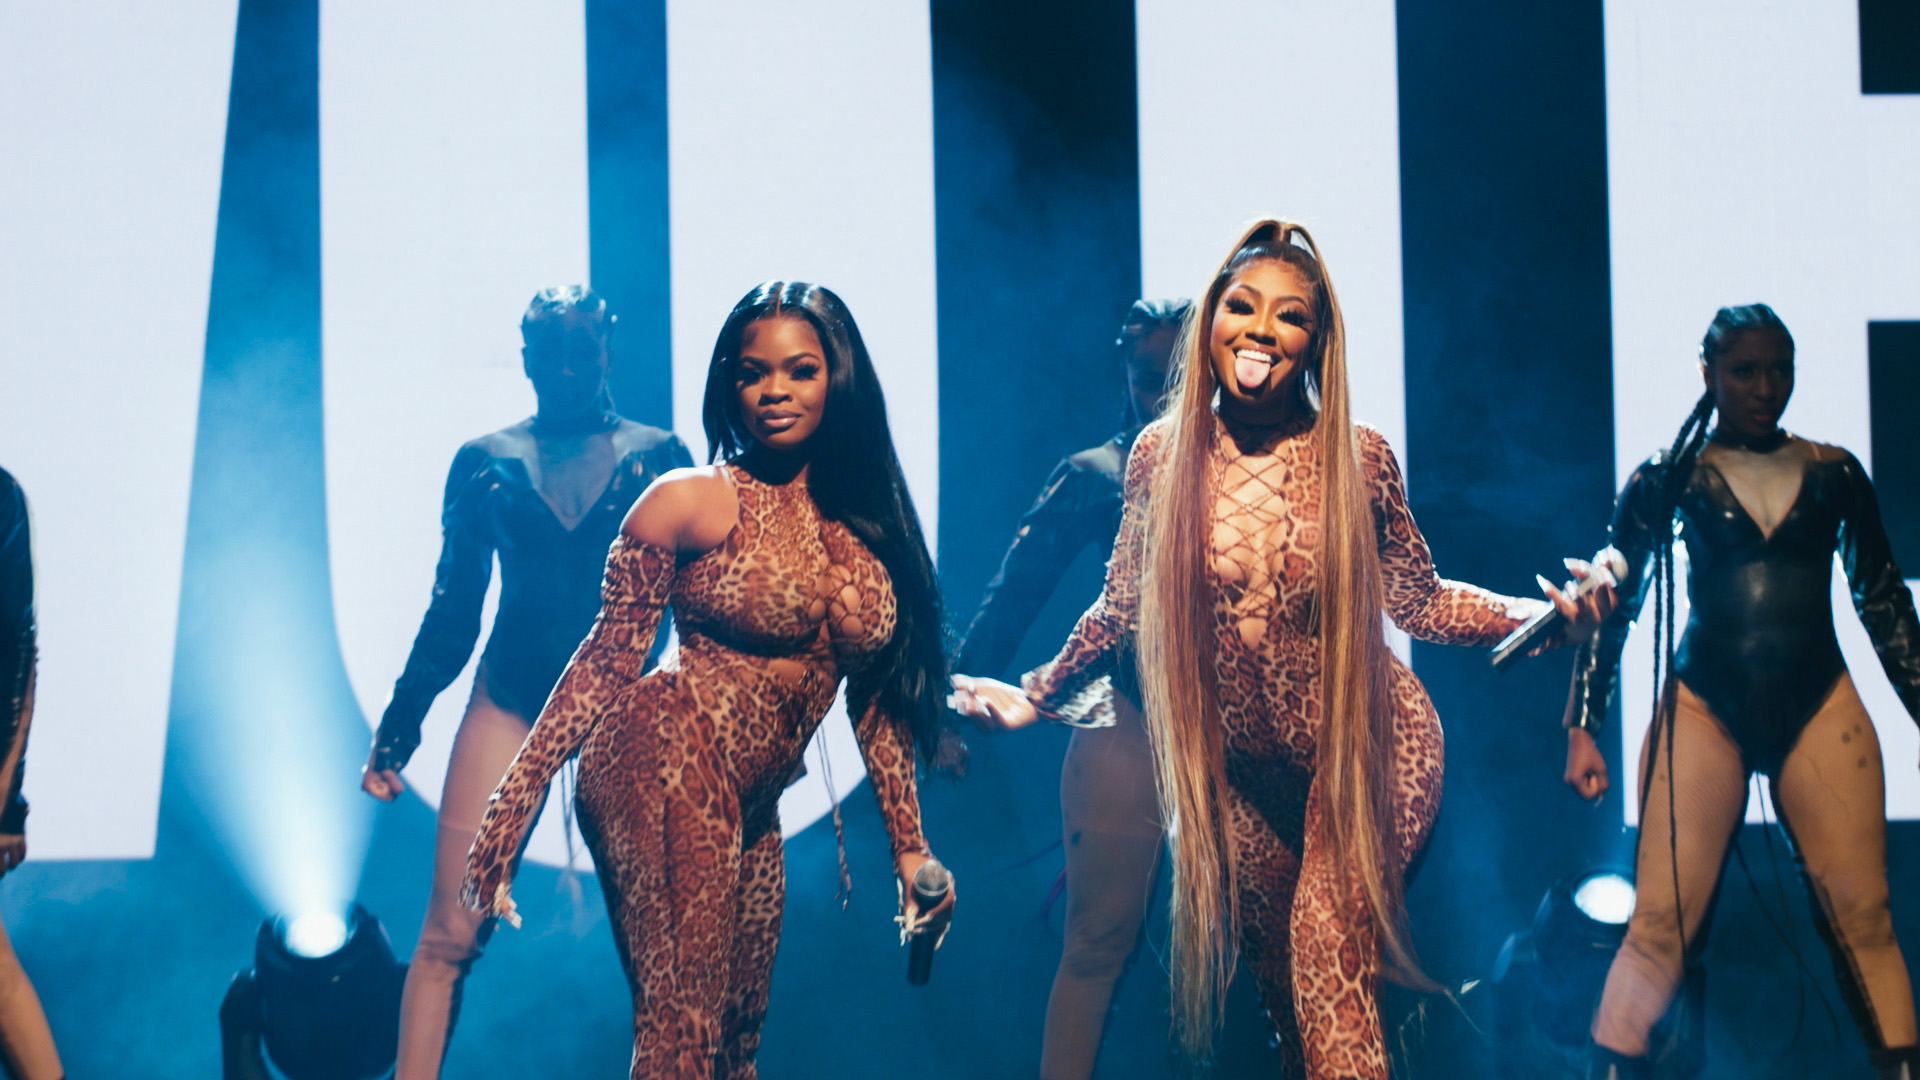 bet-hip-hop-awards-2020-performances-a9a